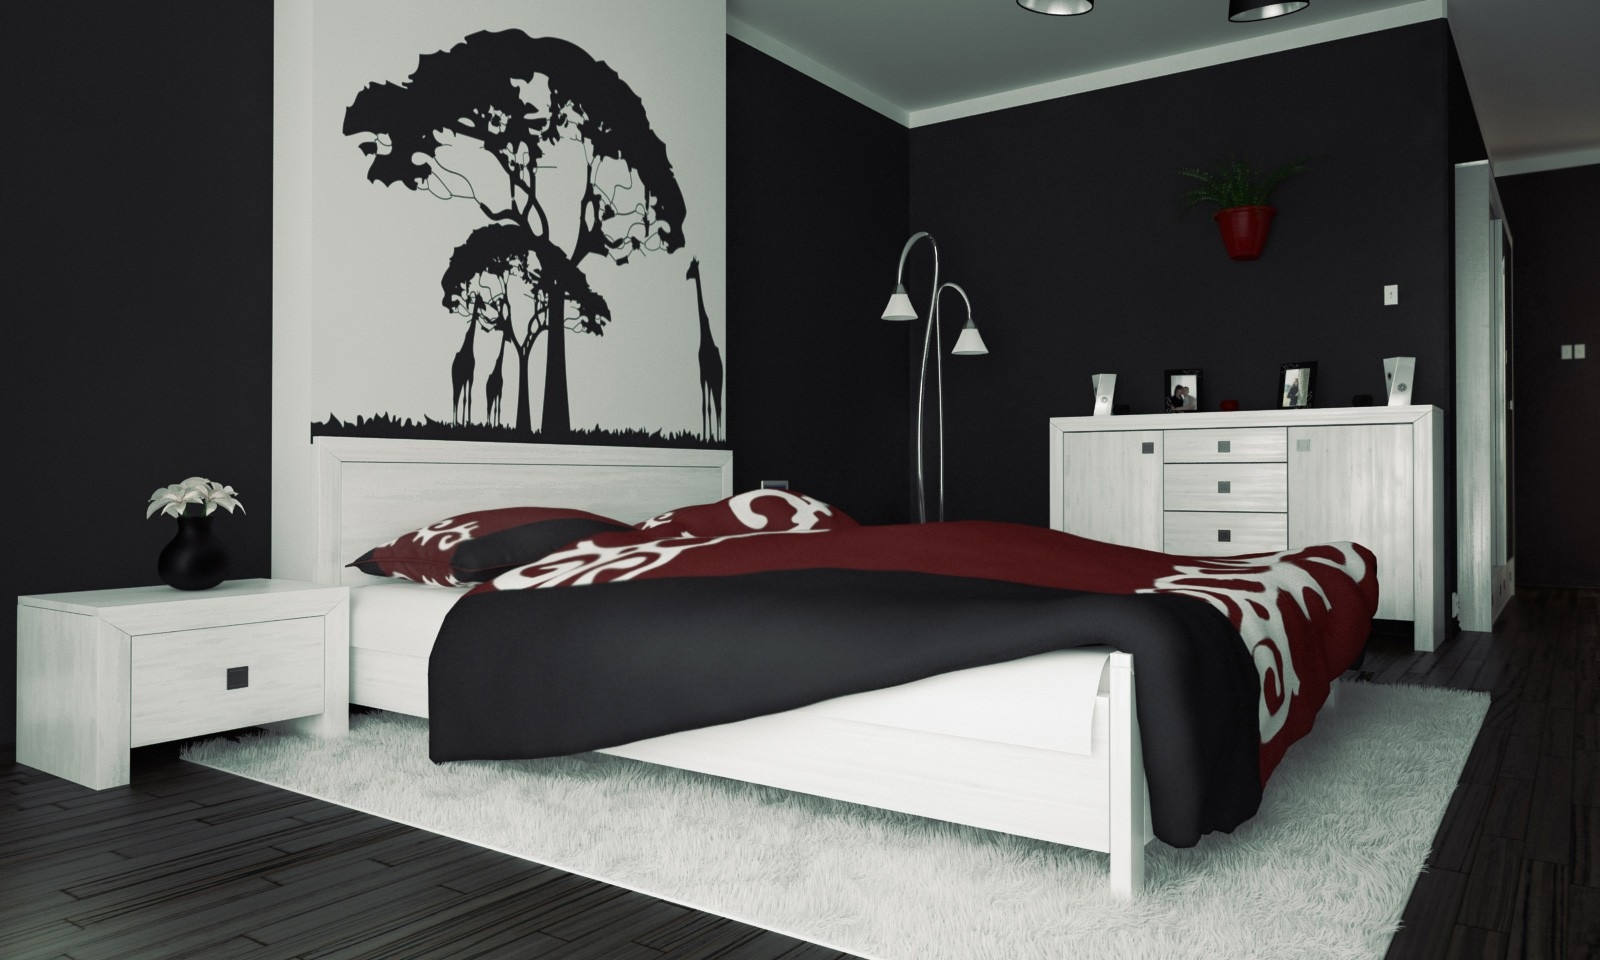 3 Black And White Bedroom Ideas - Midcityeast throughout Bedroom Wall Painting Designs Black And White 30010